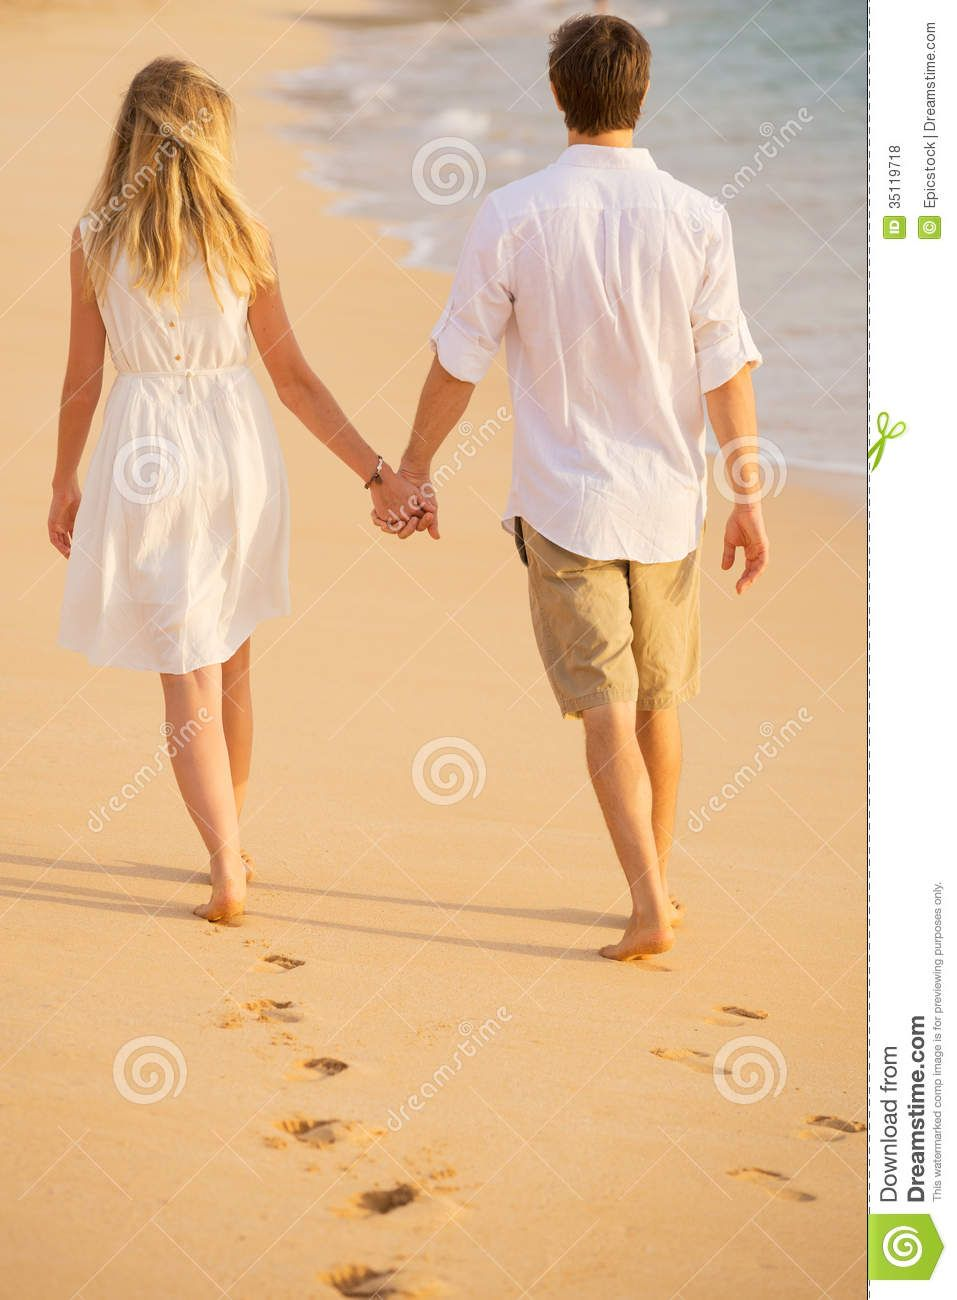 Romantic Couple Holding Hands Walking On Beach At Sunset Royalty